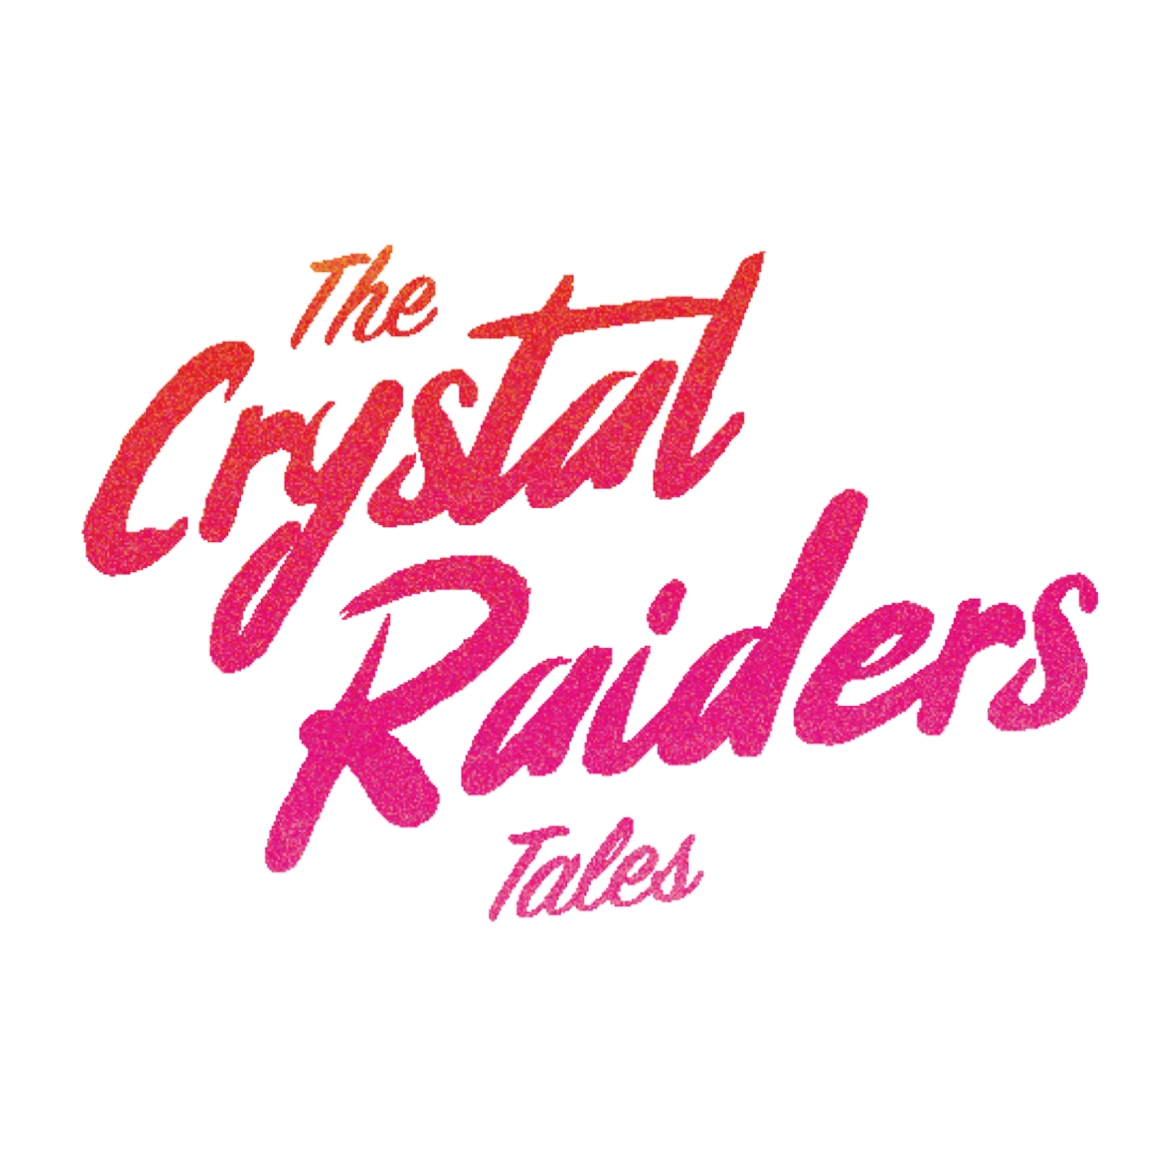 The Crystal Raiders Tales logo, indegame, videp game